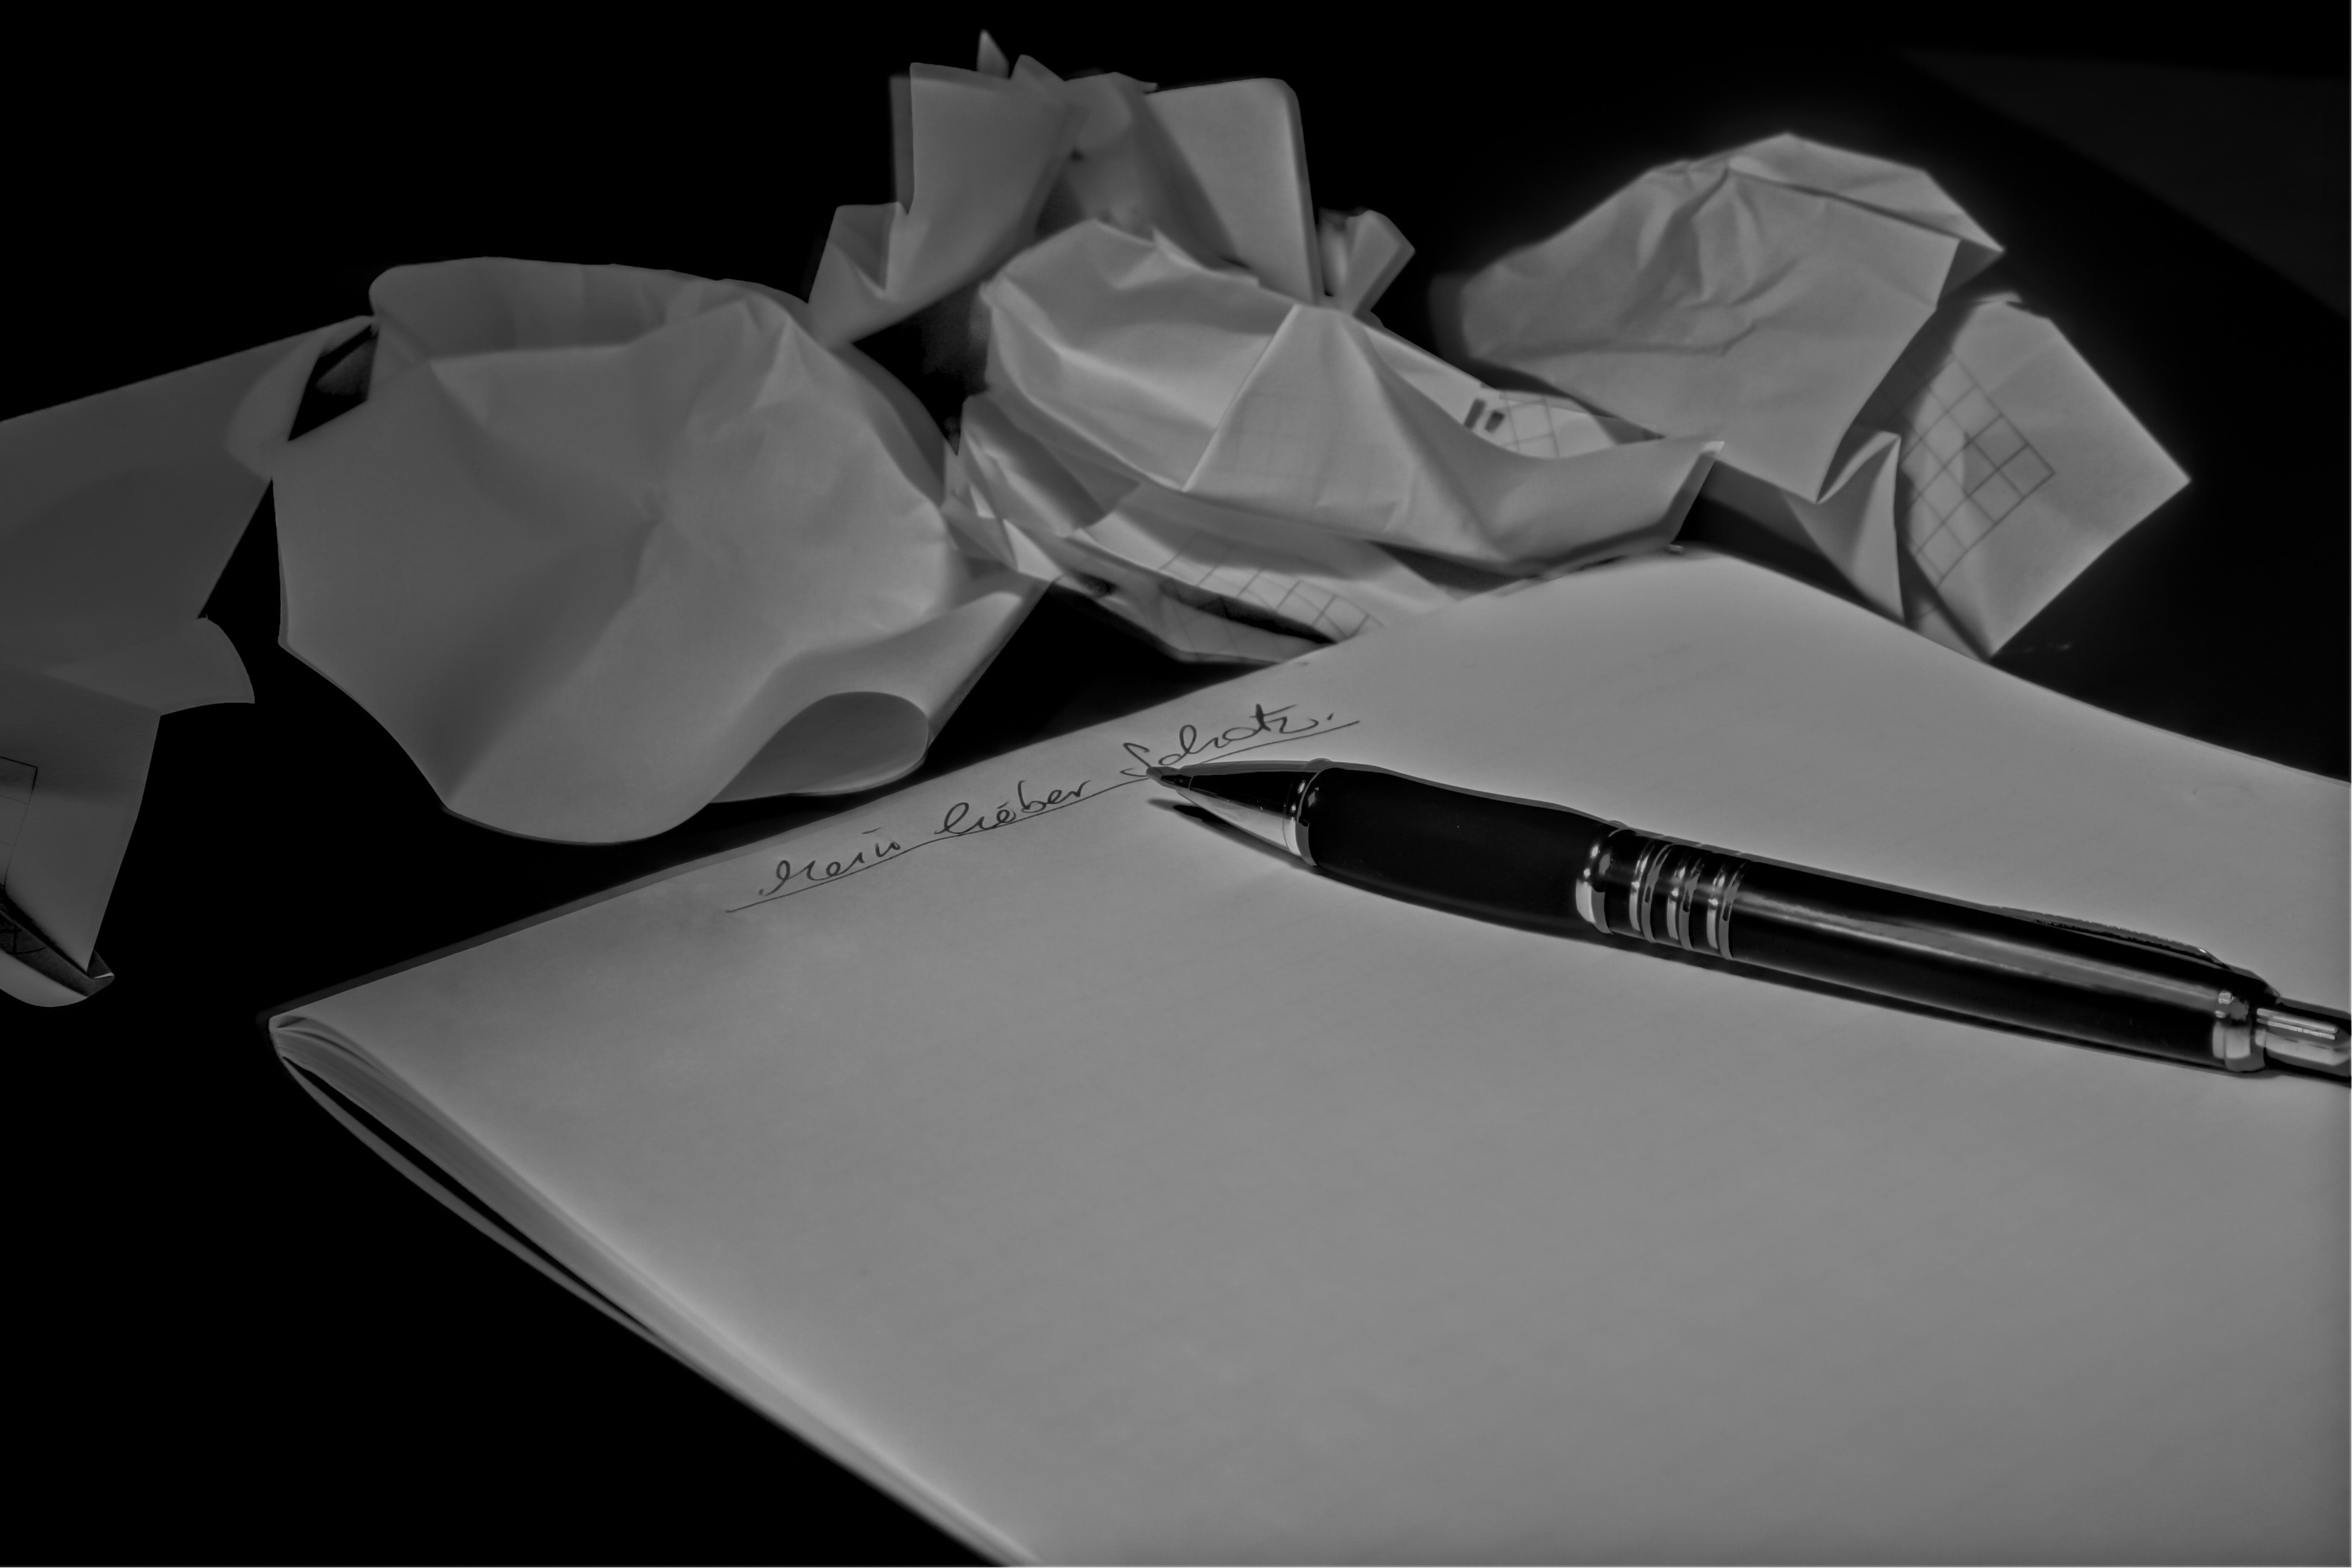 White Printer Paper With Black and Silver Gel Pen on Top, Black-and-white, Notepad, Paper, Pen, HQ Photo